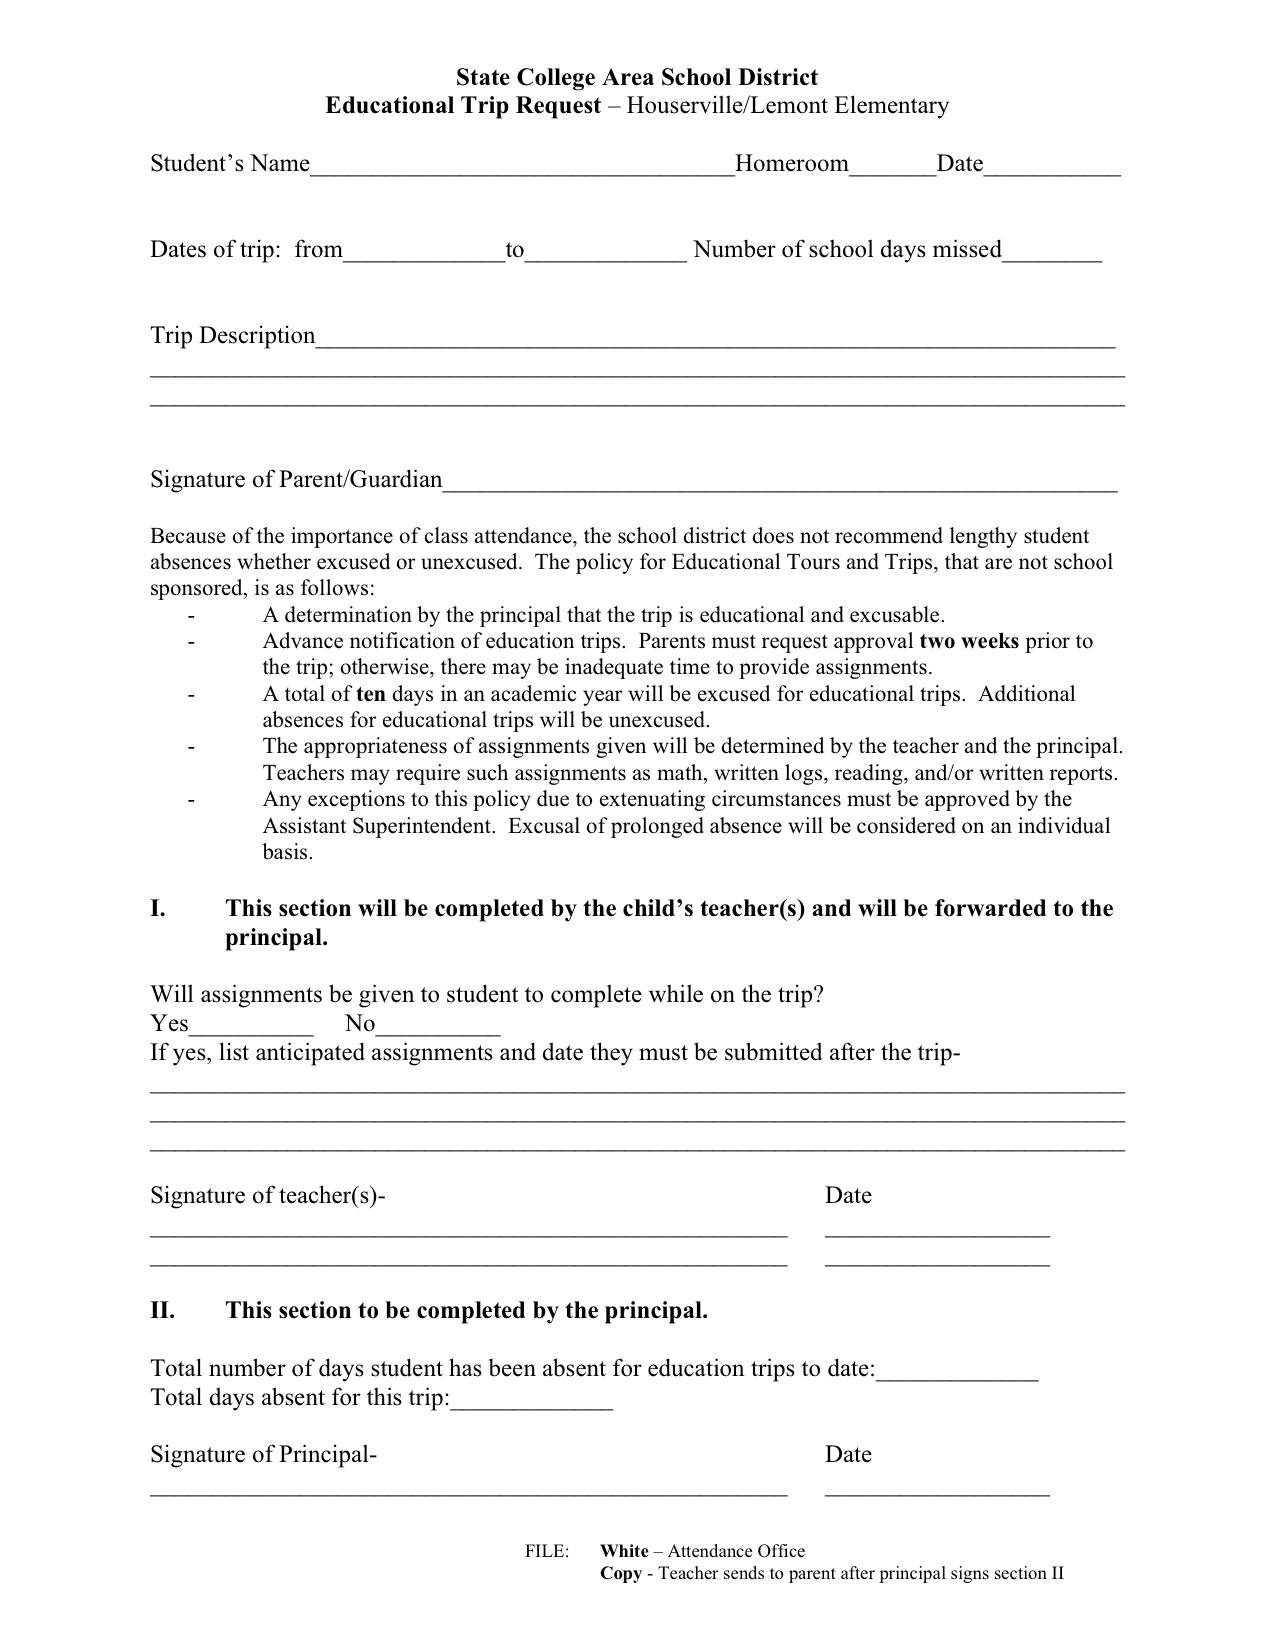 Educational trip form